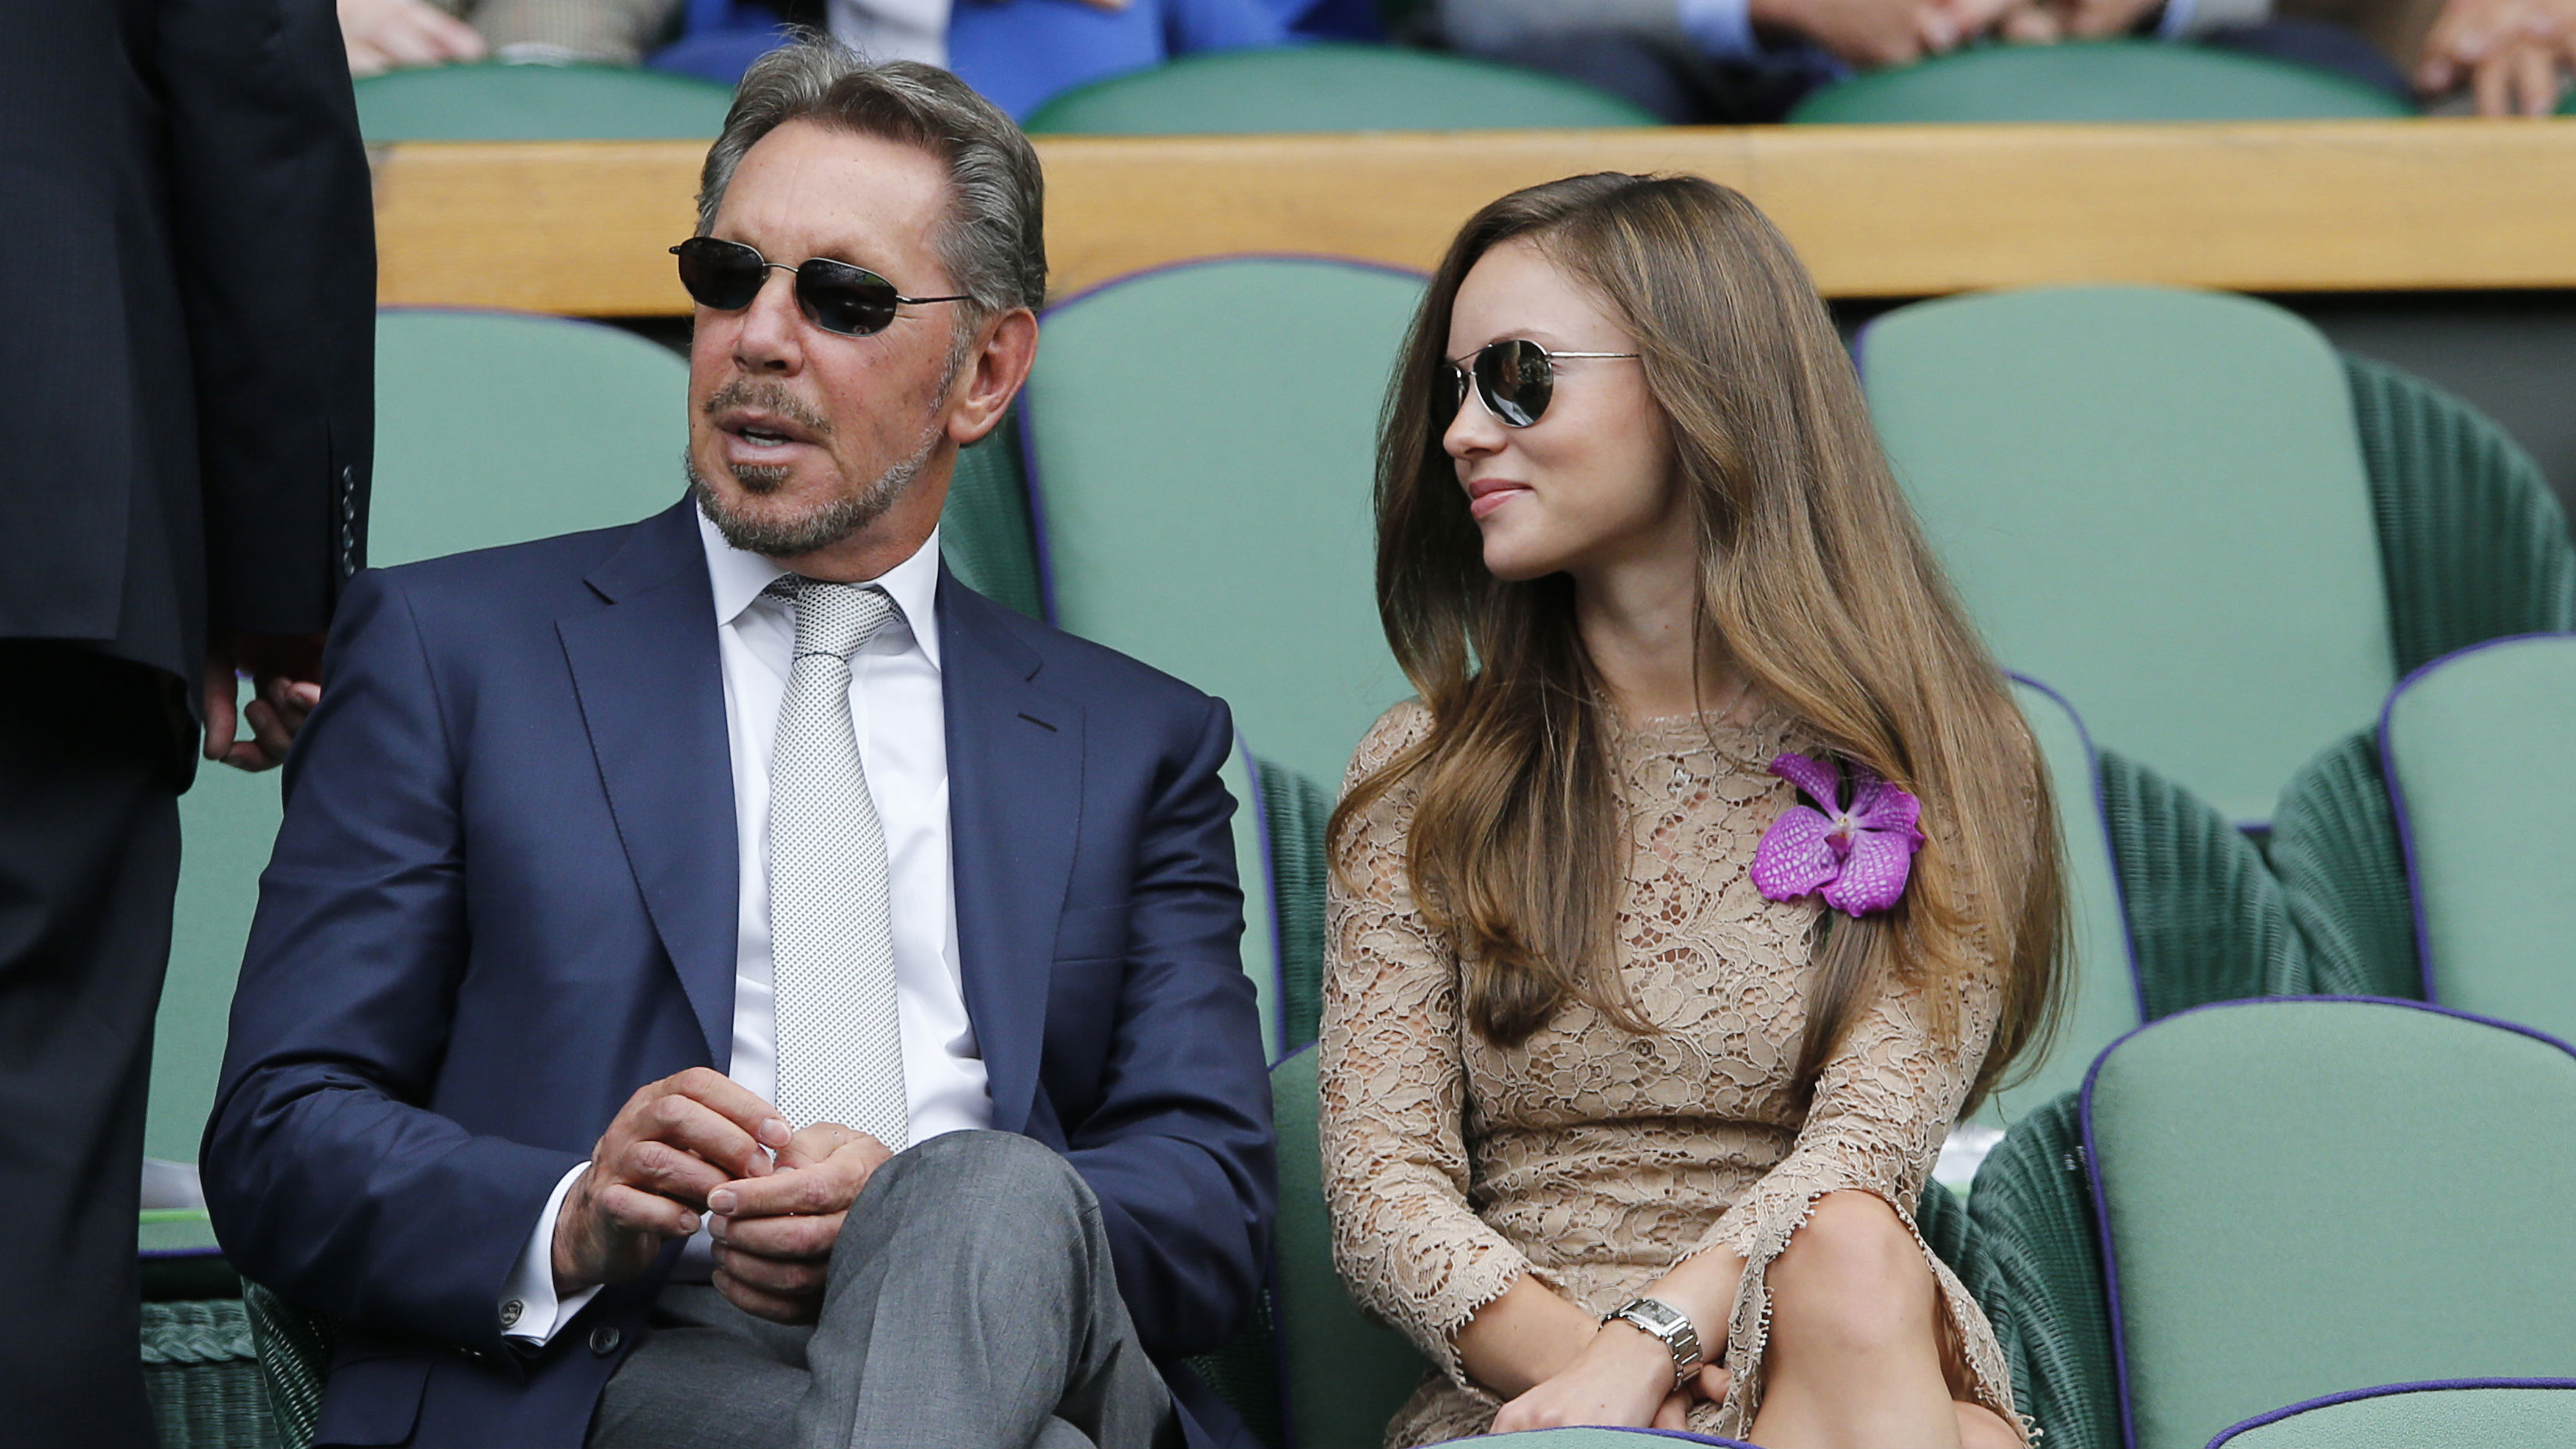 Oracle's Larry Ellison, left, and Nikita Kahn take their seats in the Royal Box